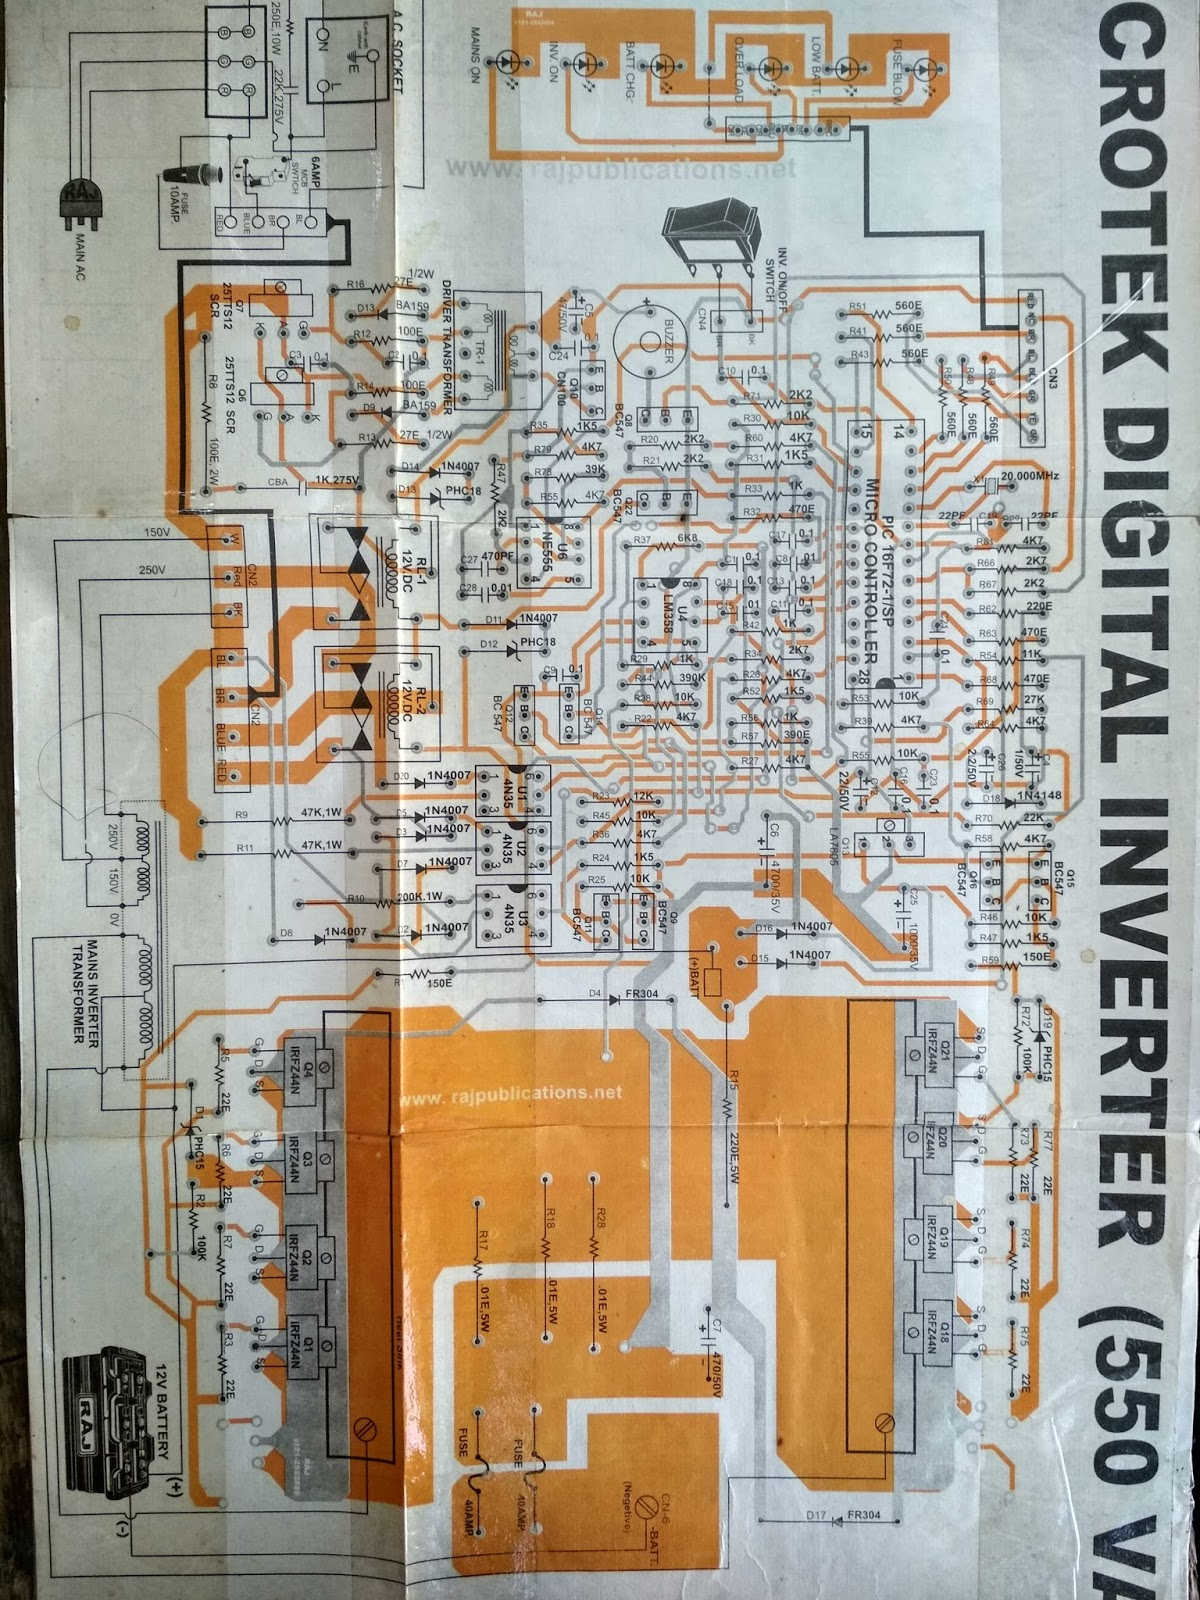 Ceiling Fan Circuit Diagram Traxxas T Maxx Transmission Pure Sinewave Inverter Diagram: 11105 Ic China Tv